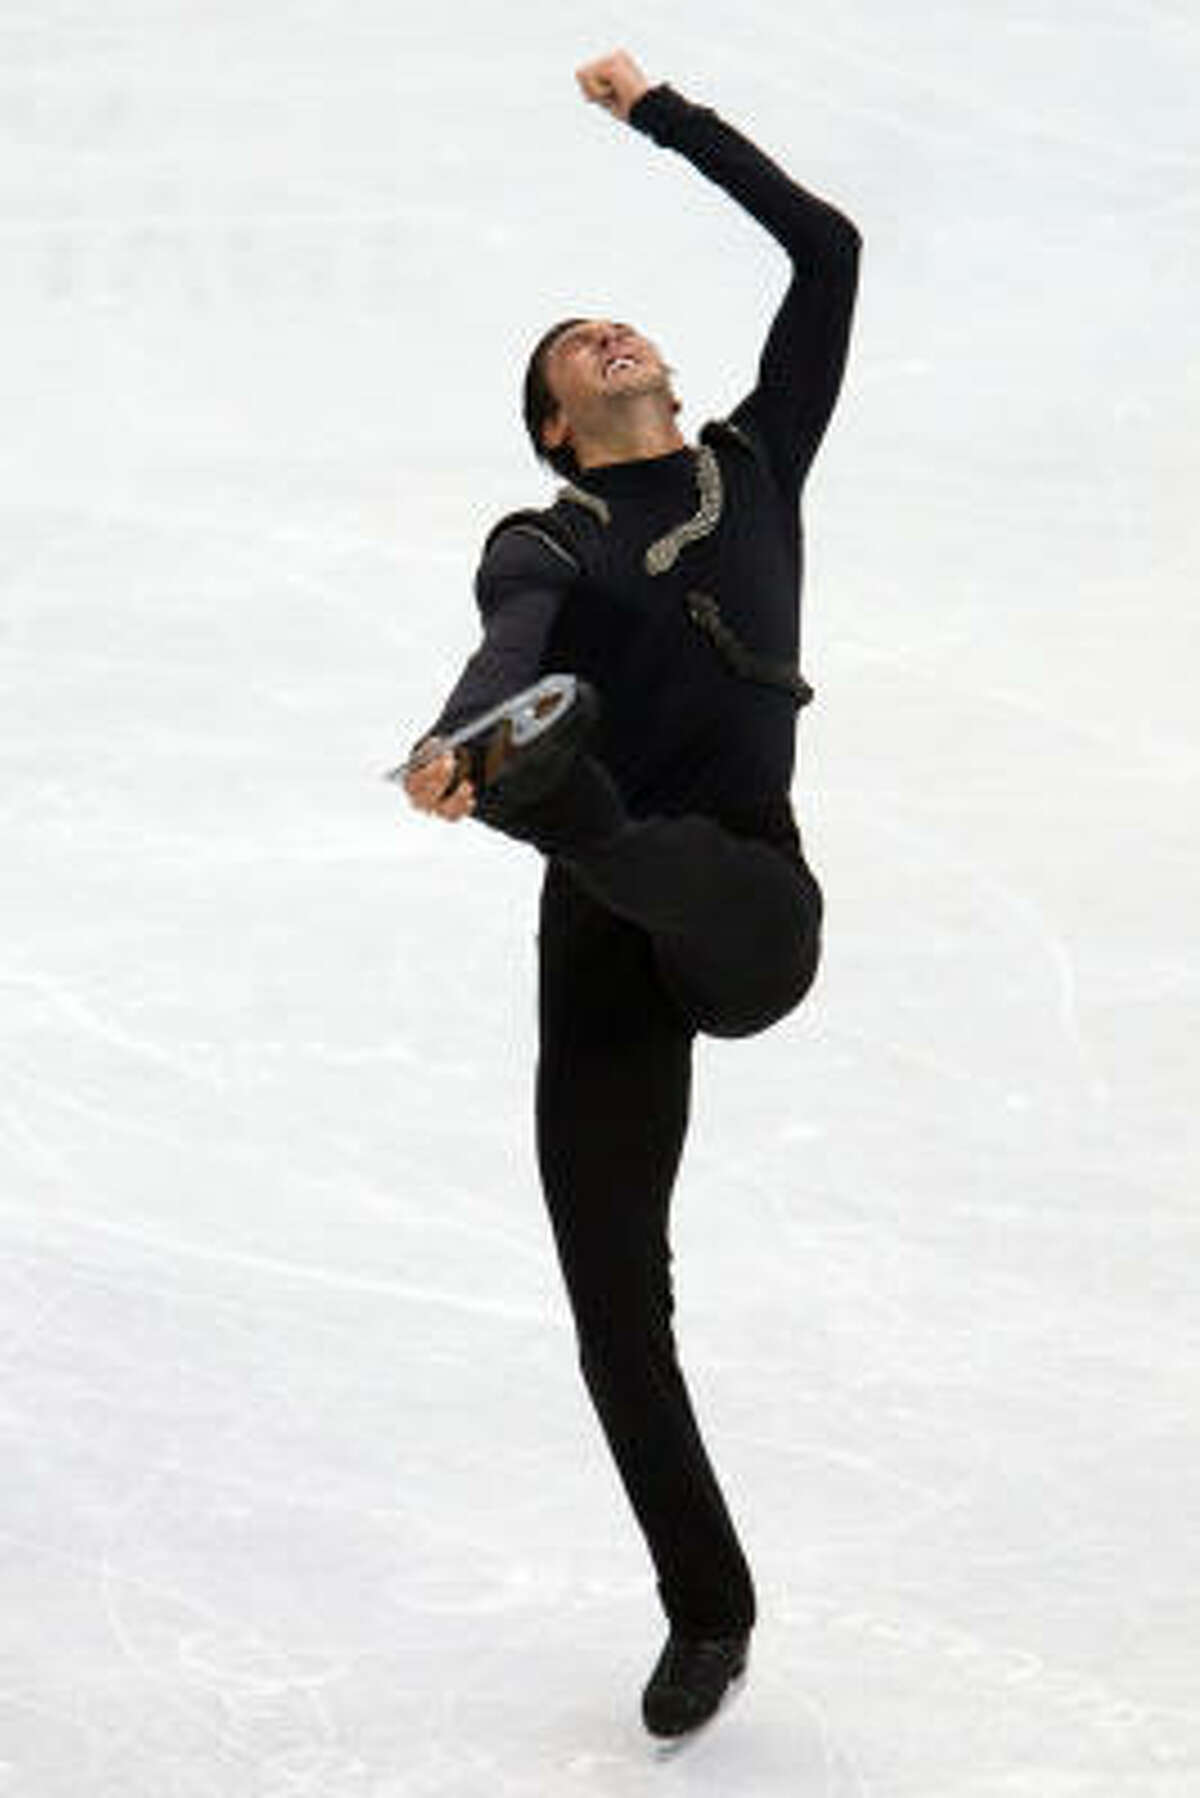 Evan Lysacek skated a clean, precise long program.